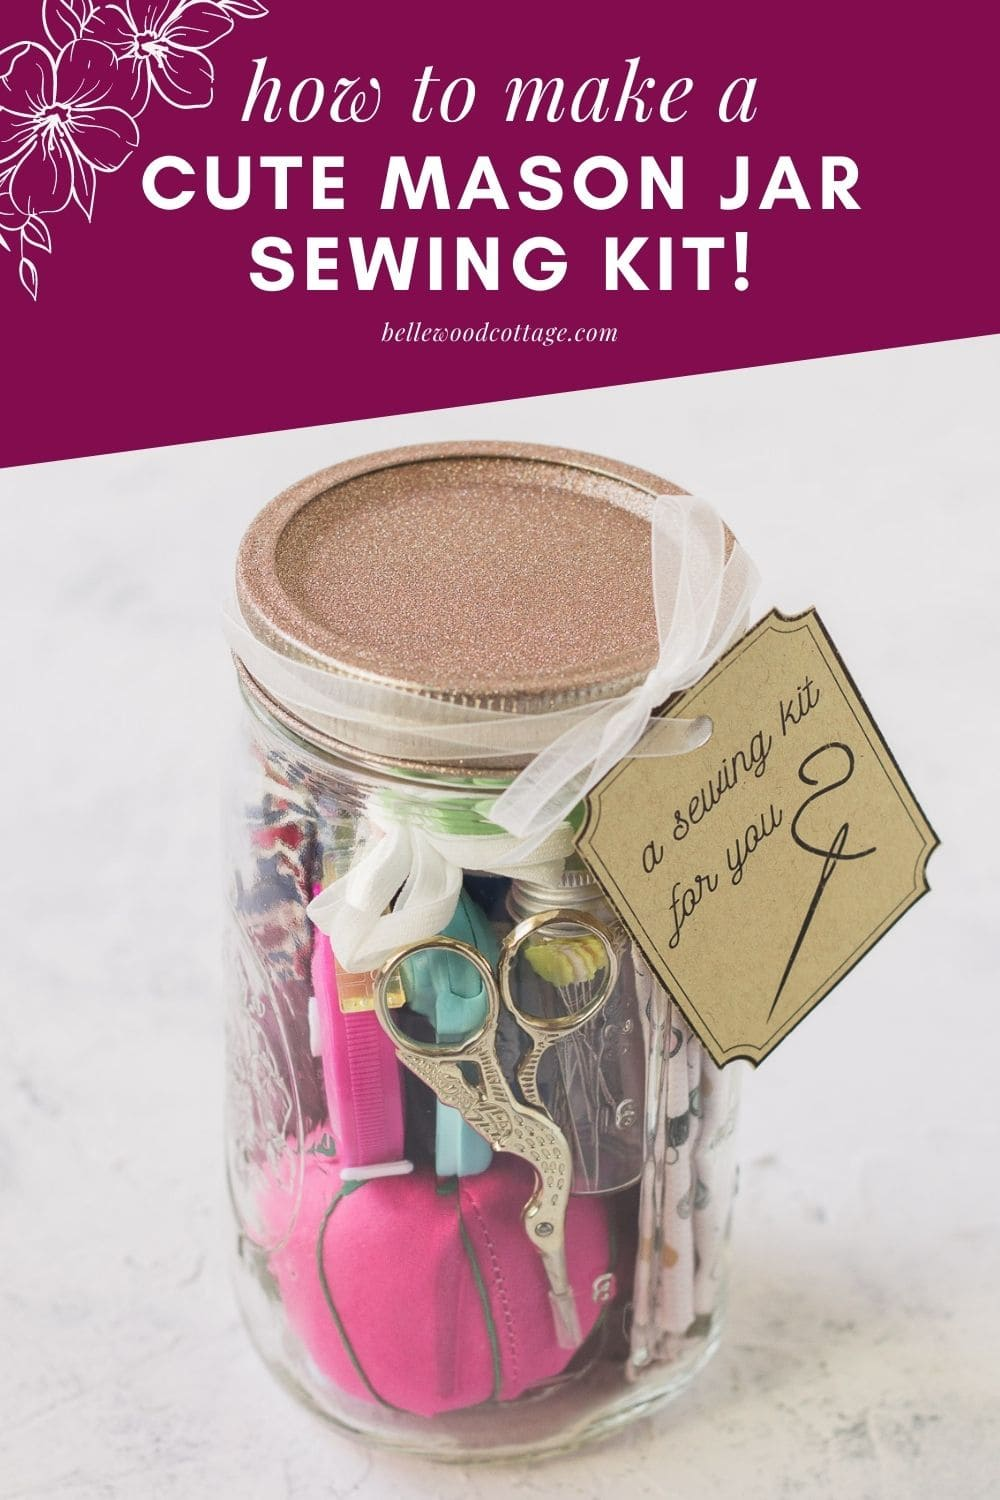 A mason jar sewing kit filled with sewing supplies.